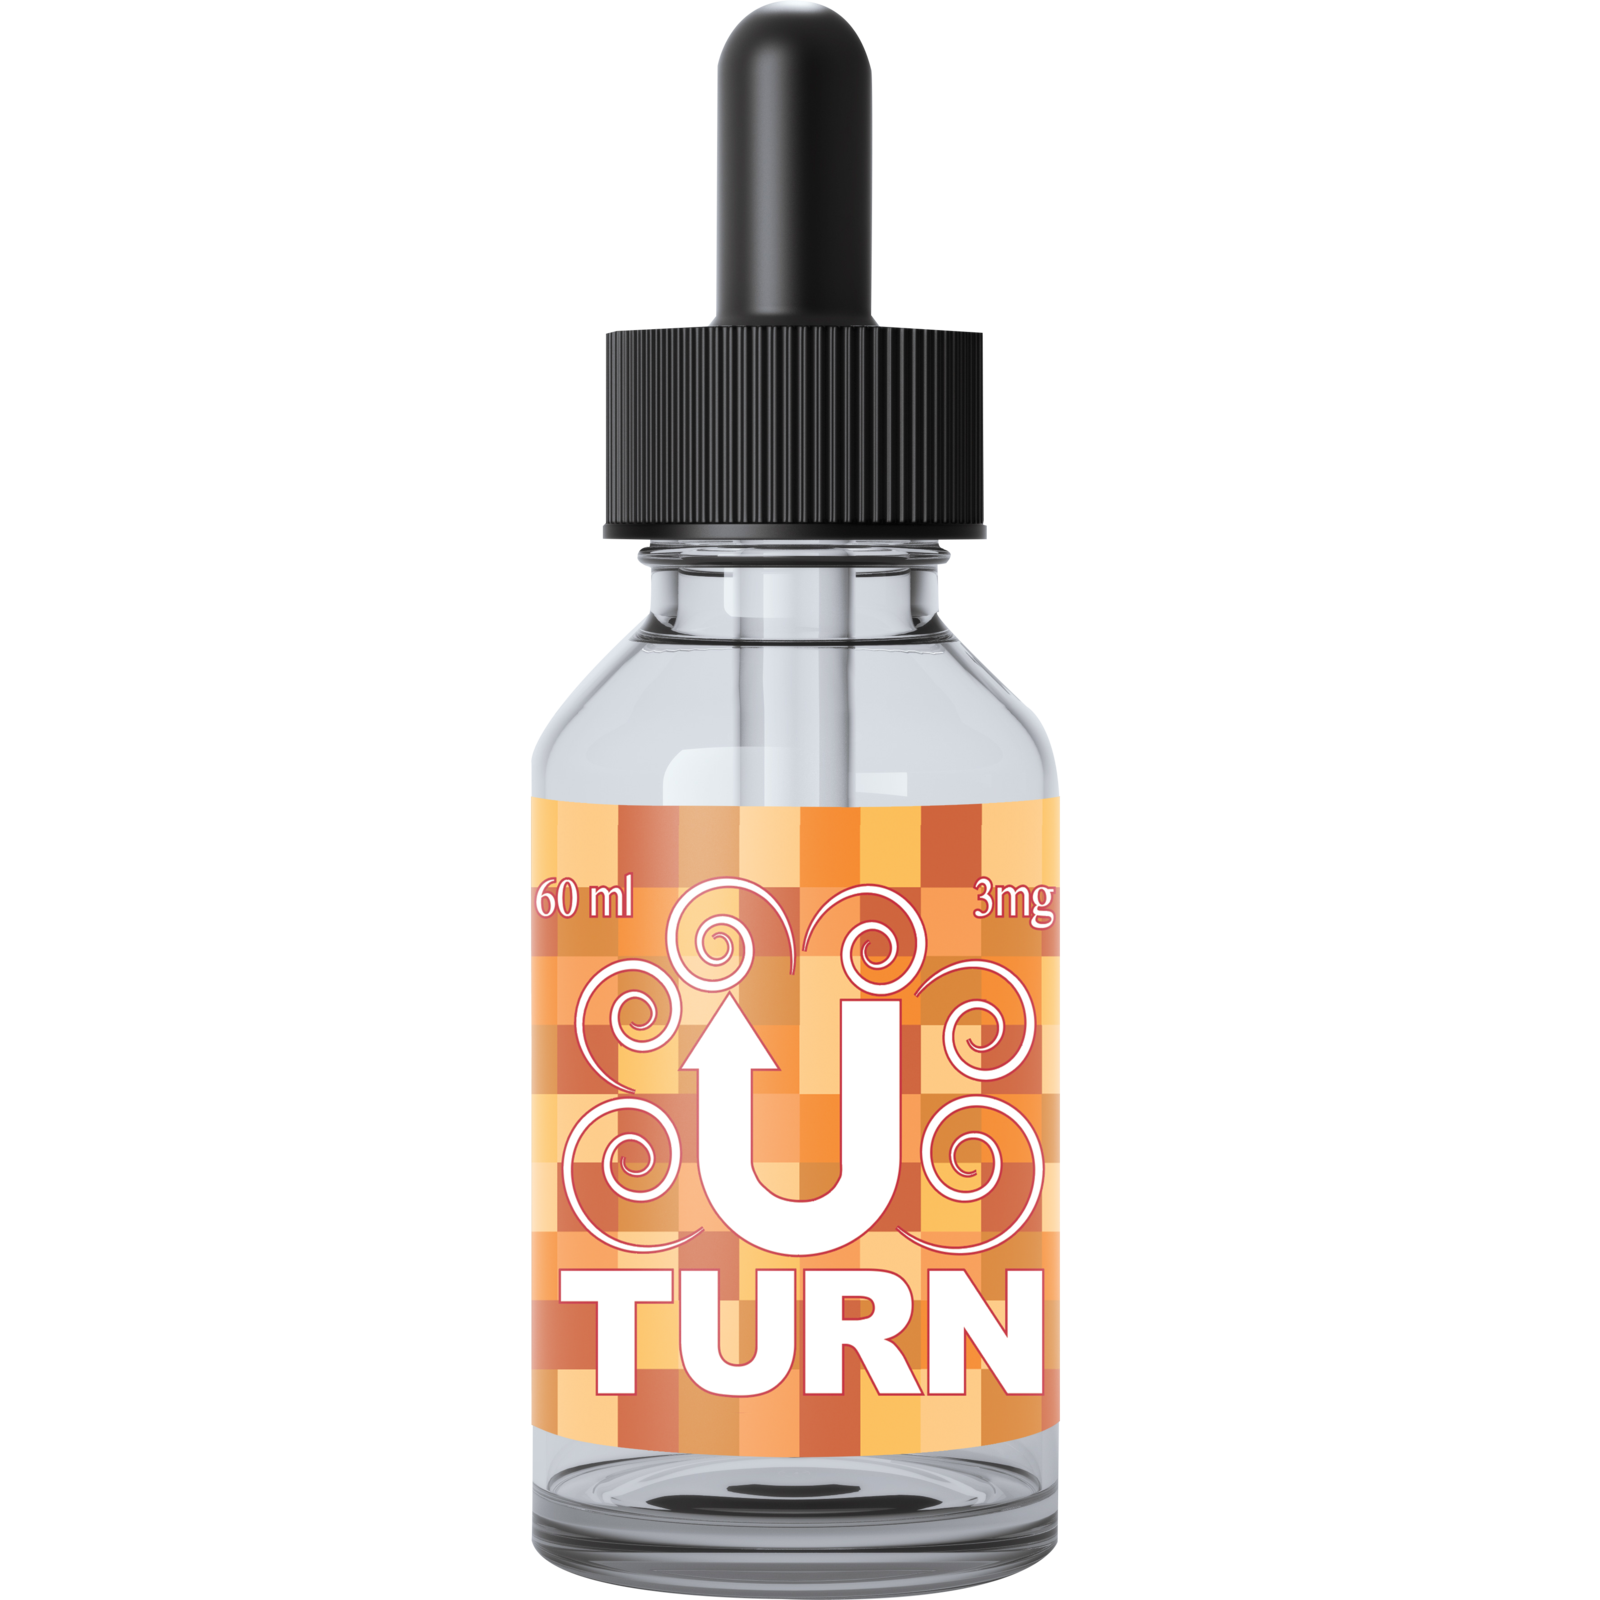 Pumpkin Spice Latte - Uturn - IN2VAPES